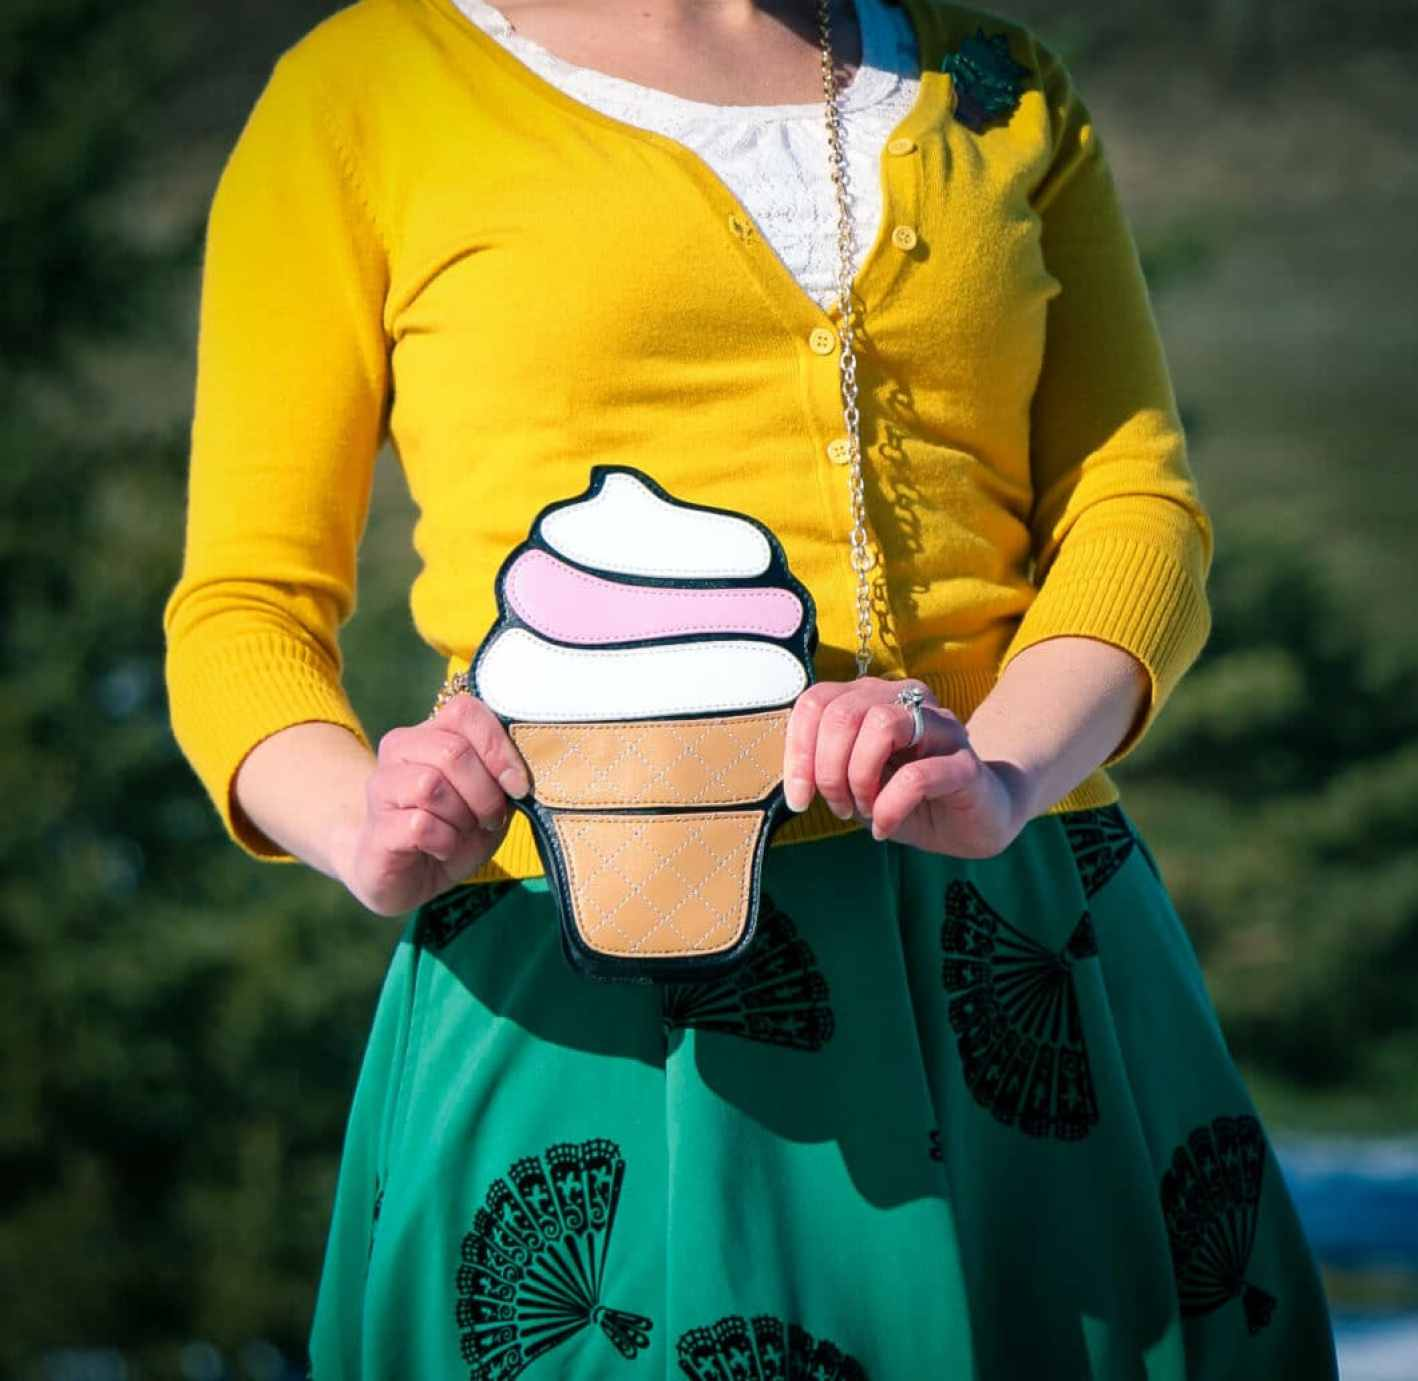 Icecream cone purse